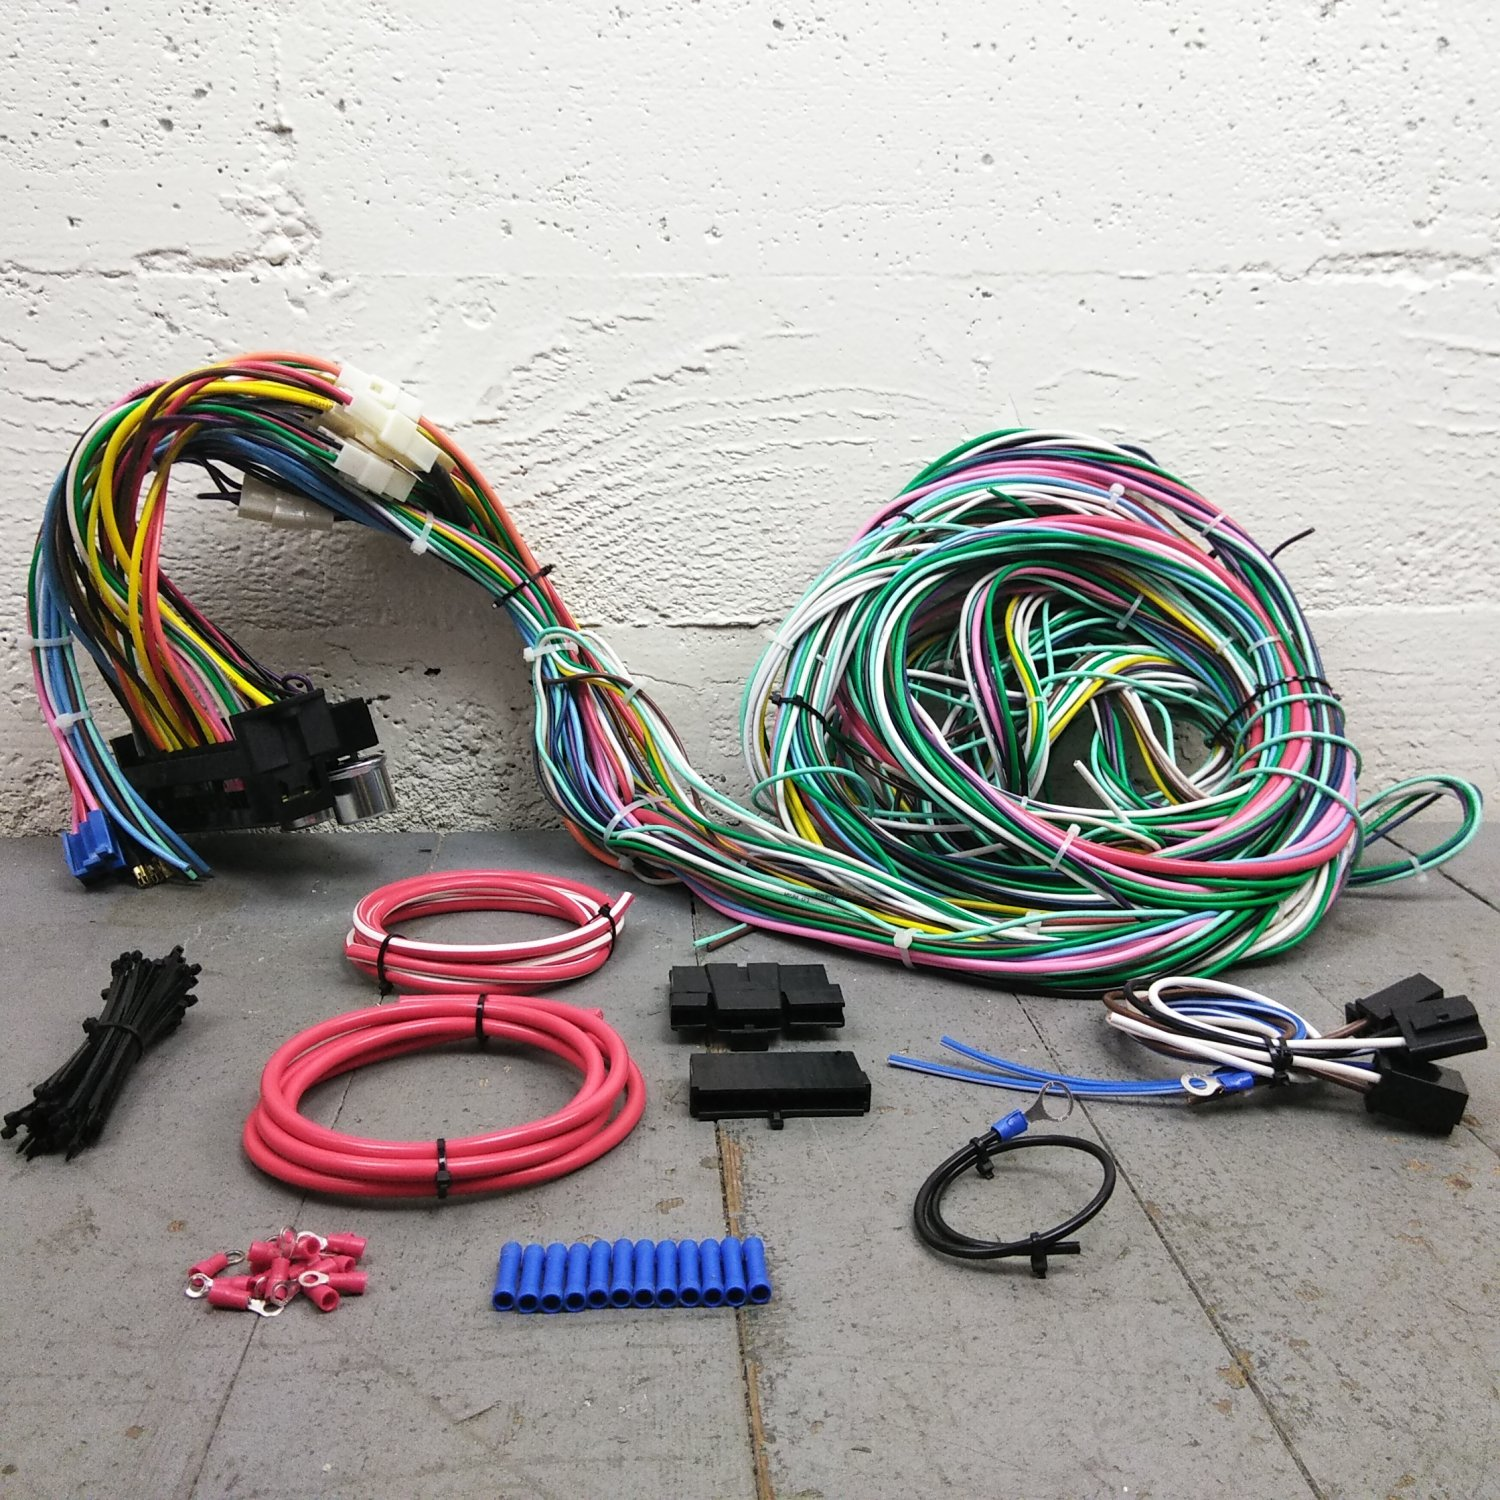 Wondrous Painless Wiring Harness Mopar Basic Electronics Wiring Diagram Wiring Cloud Pendufoxcilixyz